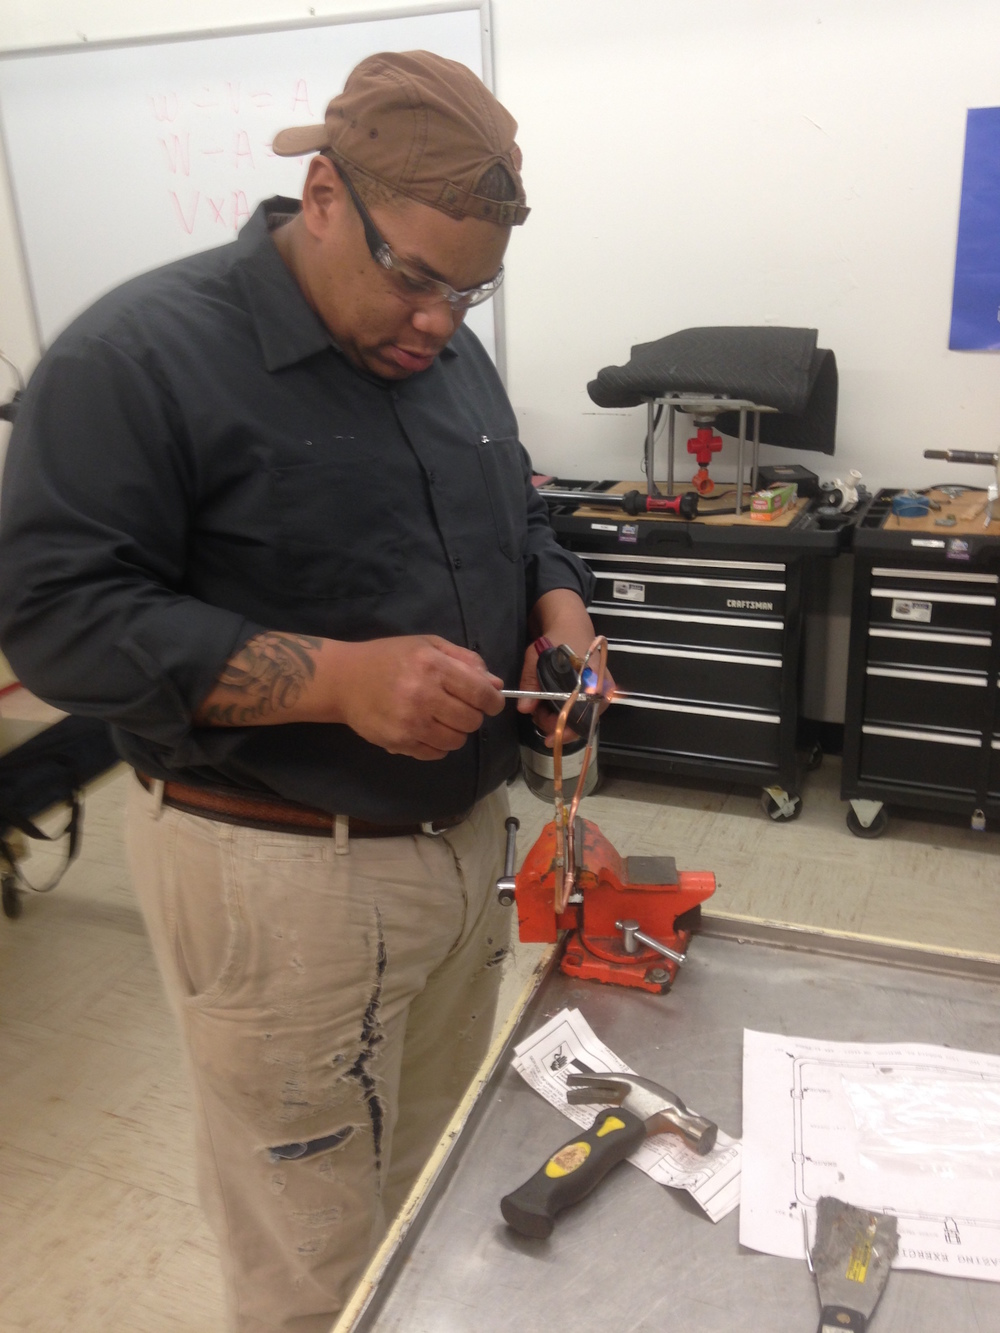 Rod Braxton, owner, displays a brazing technique for refrigeration.